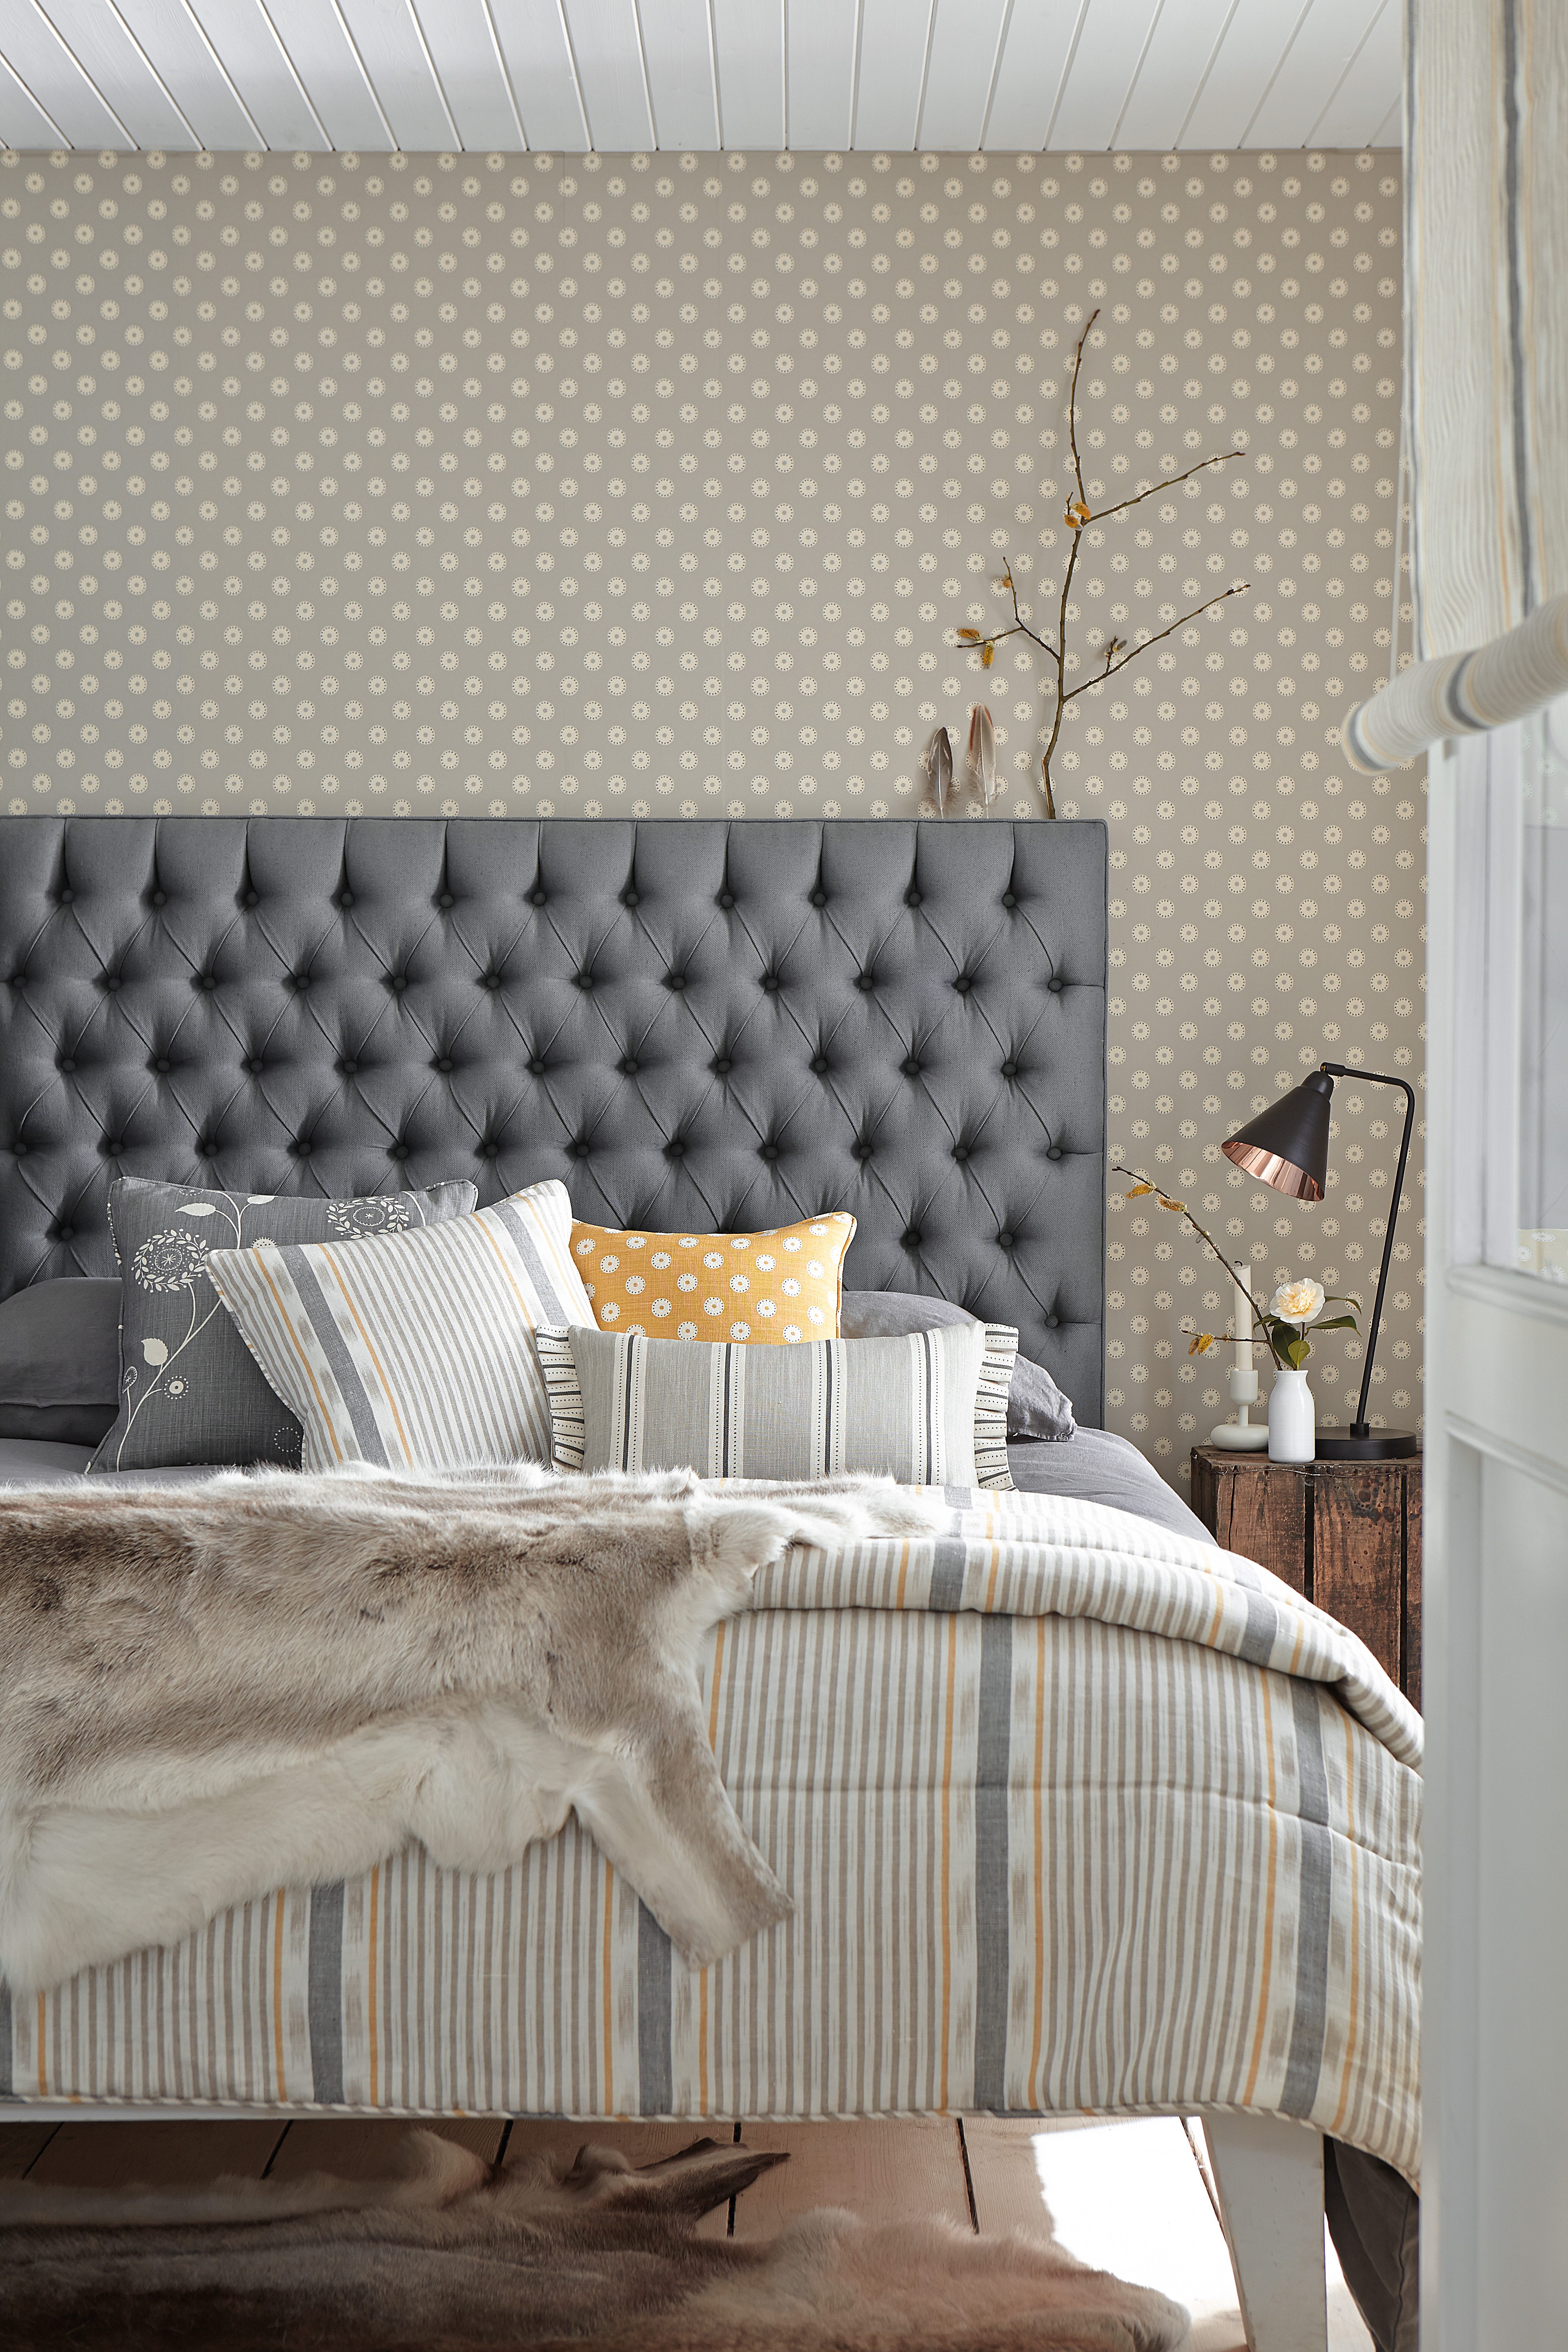 You Can Choose From Hundreds Of Combinations Fabrics And Three Styles Edging To Create A Quilt Or Cushions That Are Perfect For Your Room